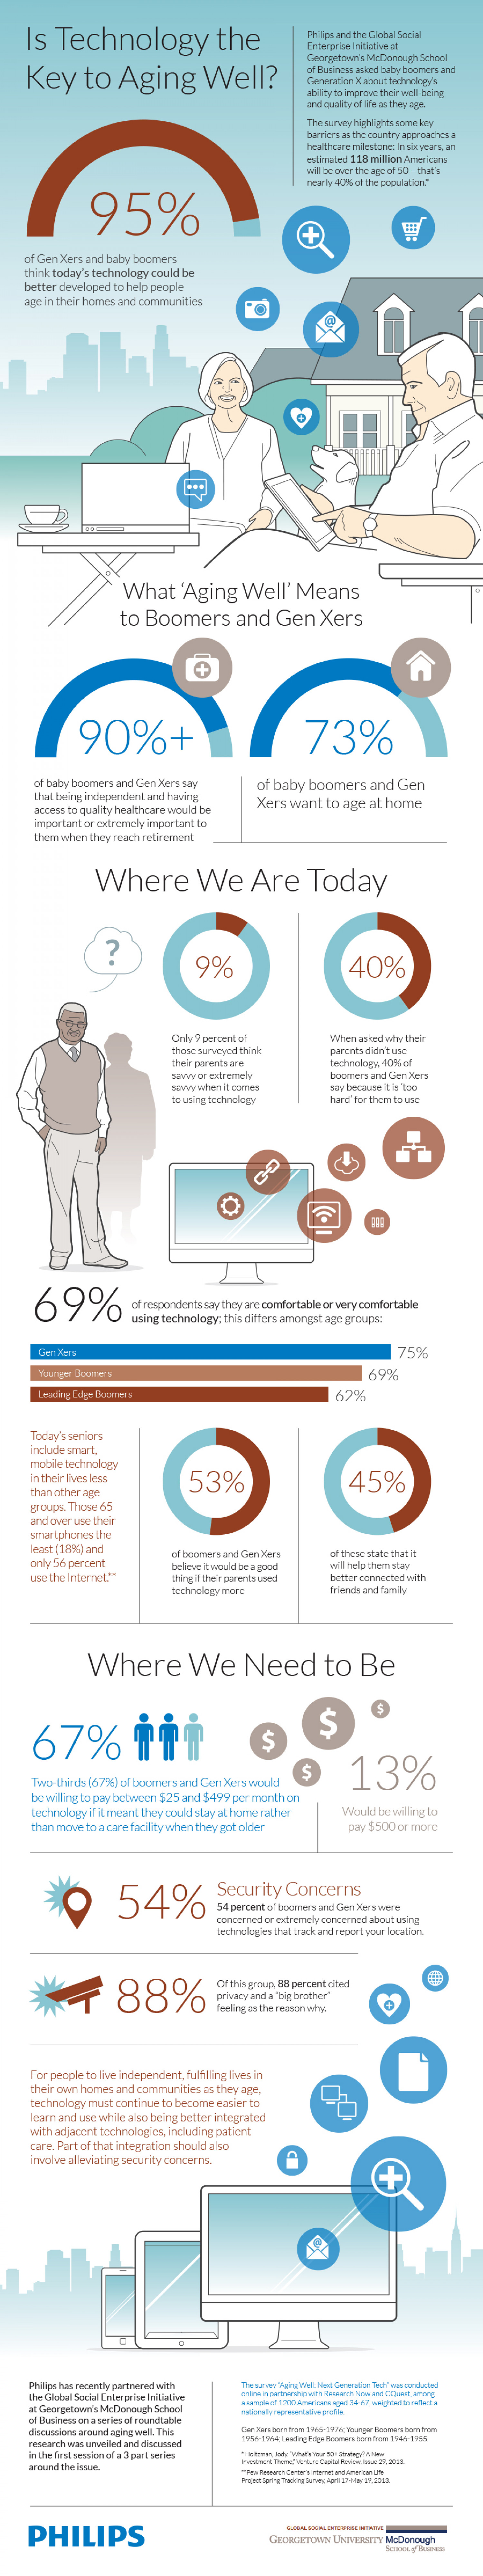 Is Technology the Key to Aging Well? Infographic